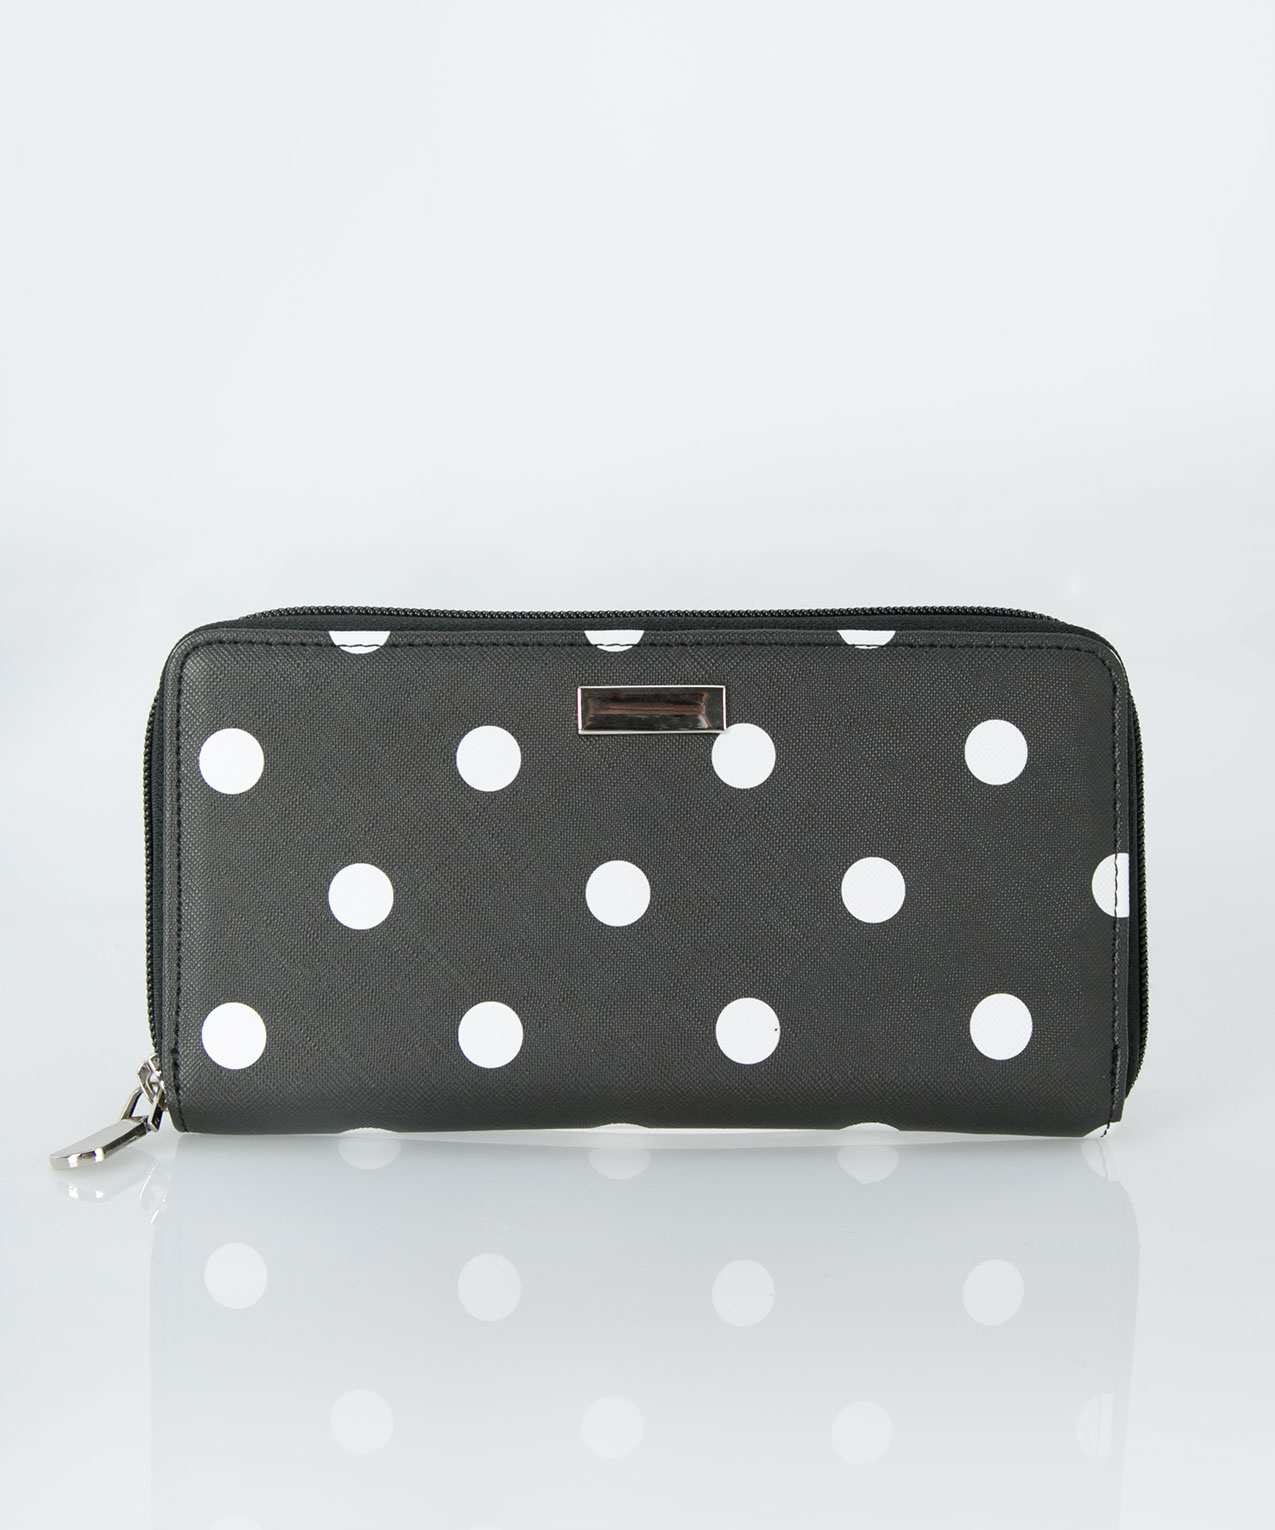 Polka Dot Zipper Wallet, Black/White, hi-res